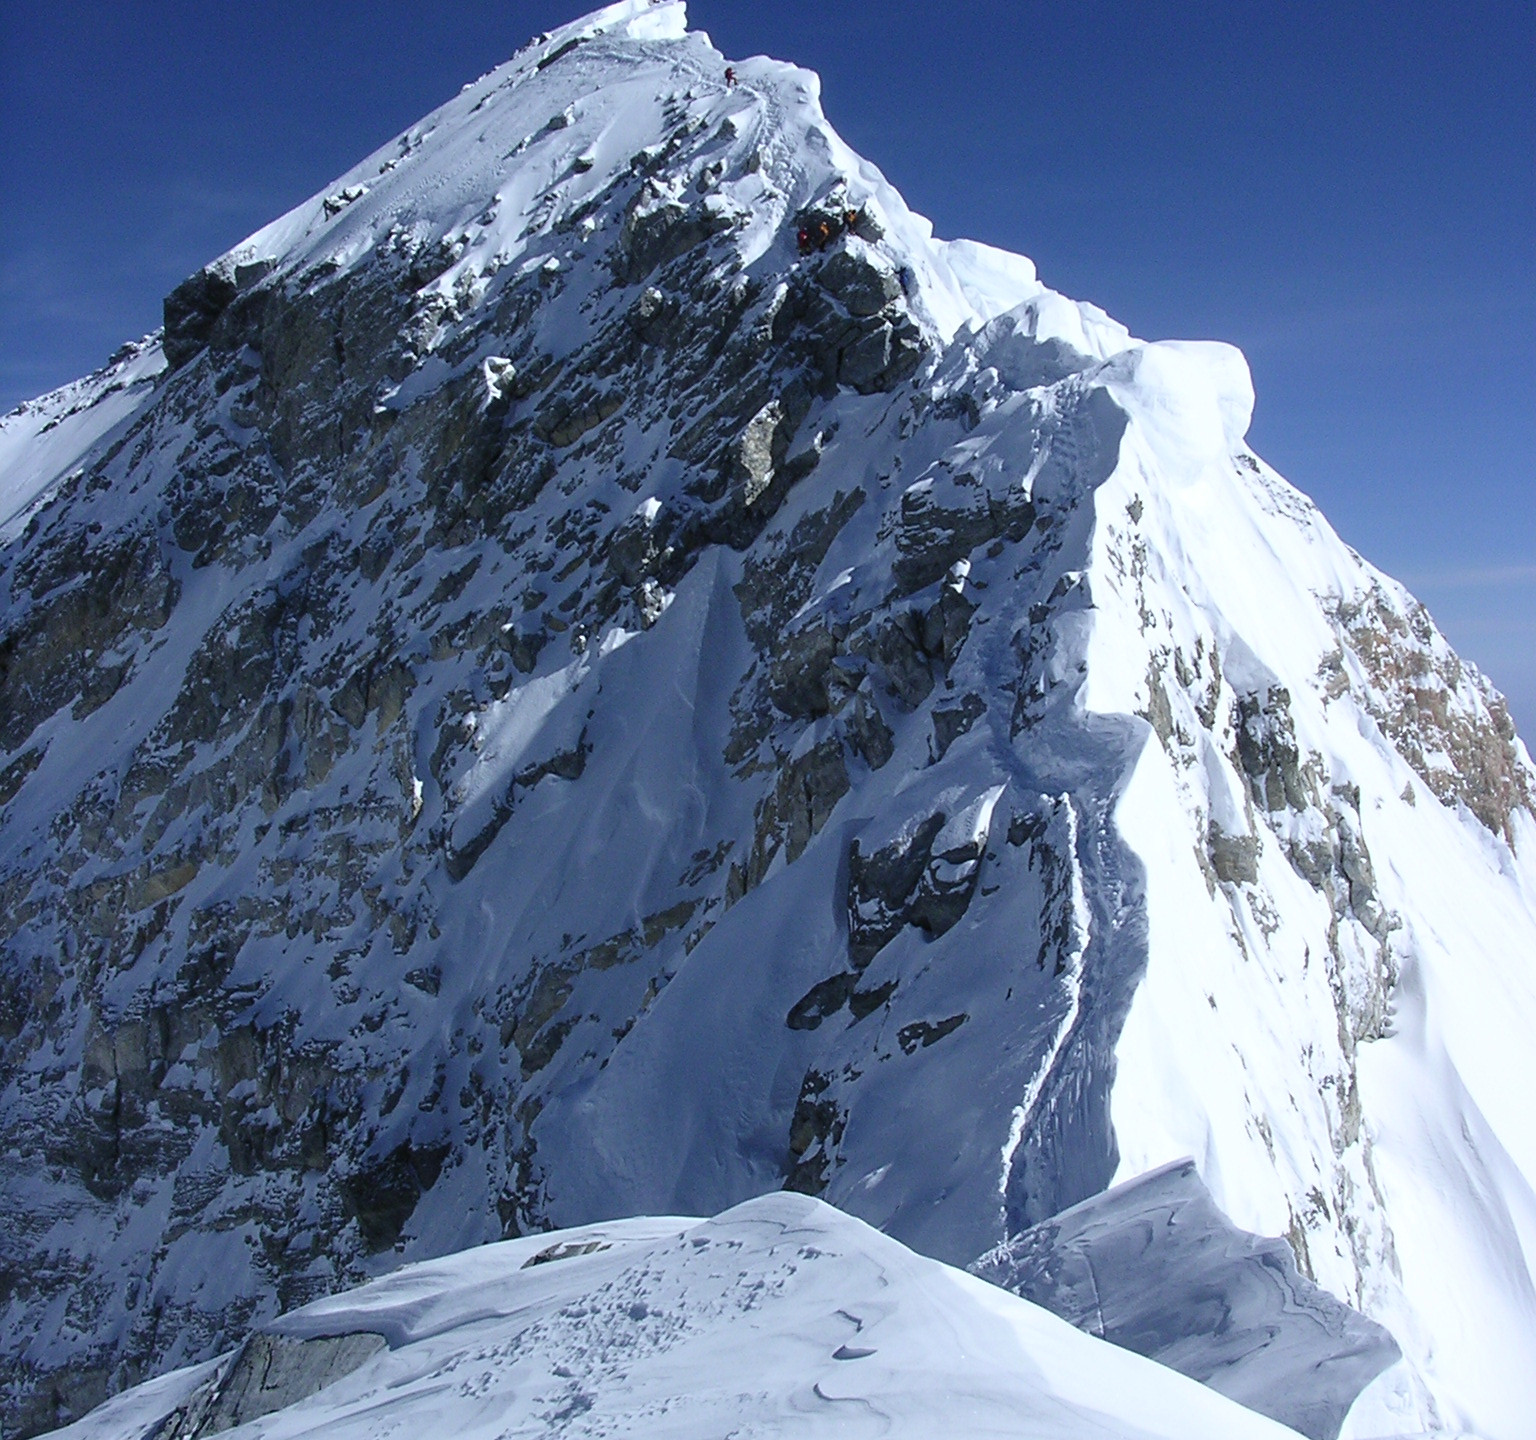 Hillary step and summit